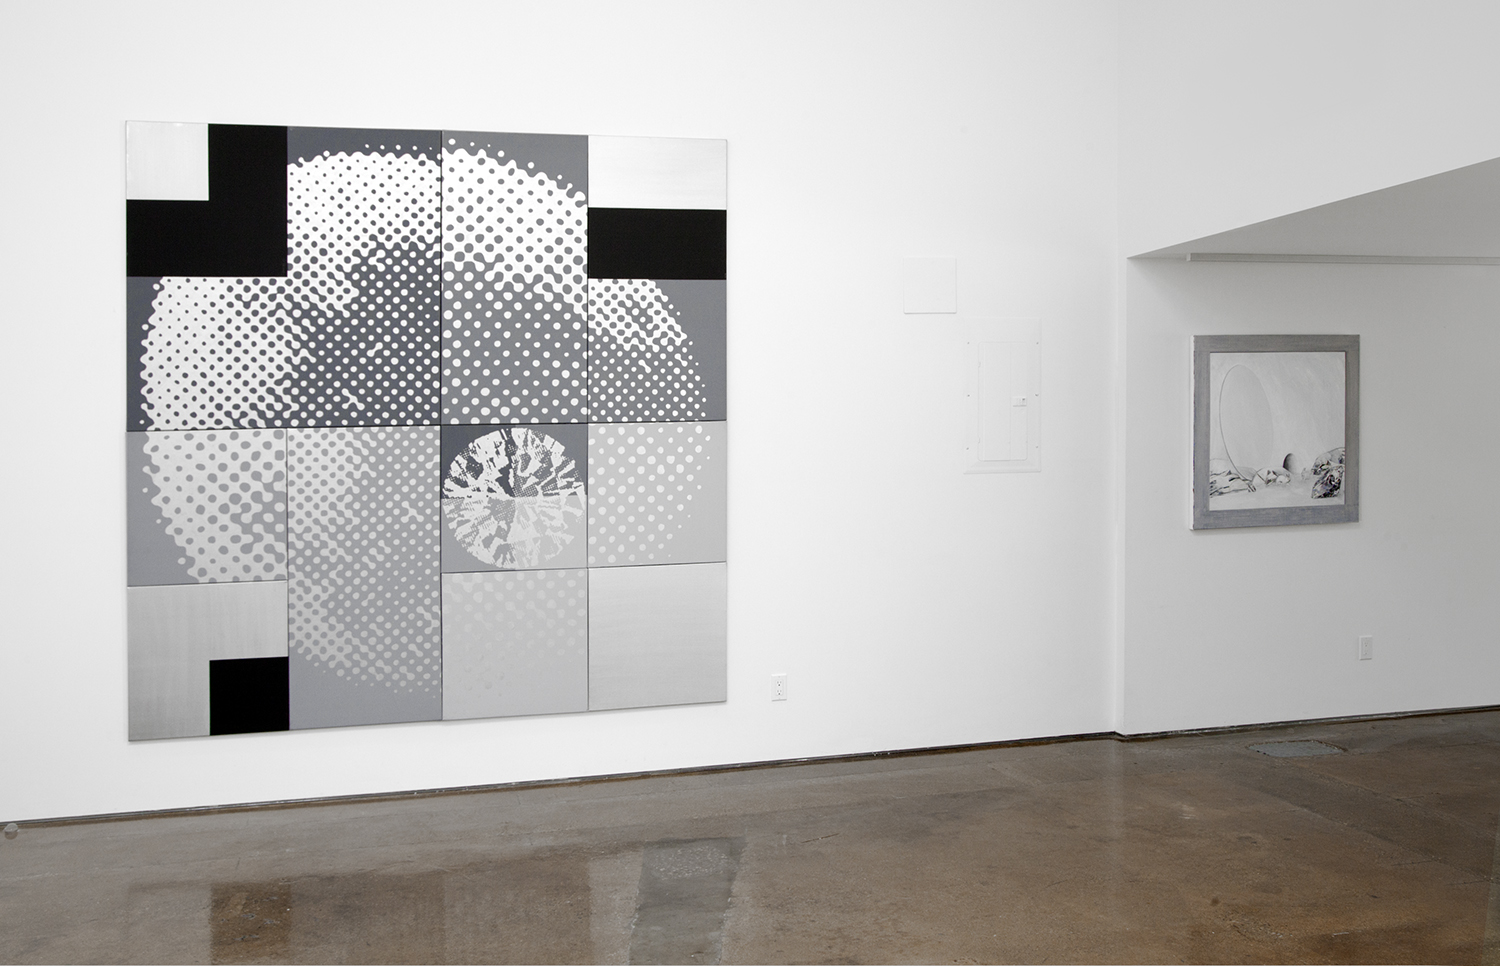 DAVID CLARKSON   Likeness Twice Over  (1985) and  Rabbits and Mirror  (2016)